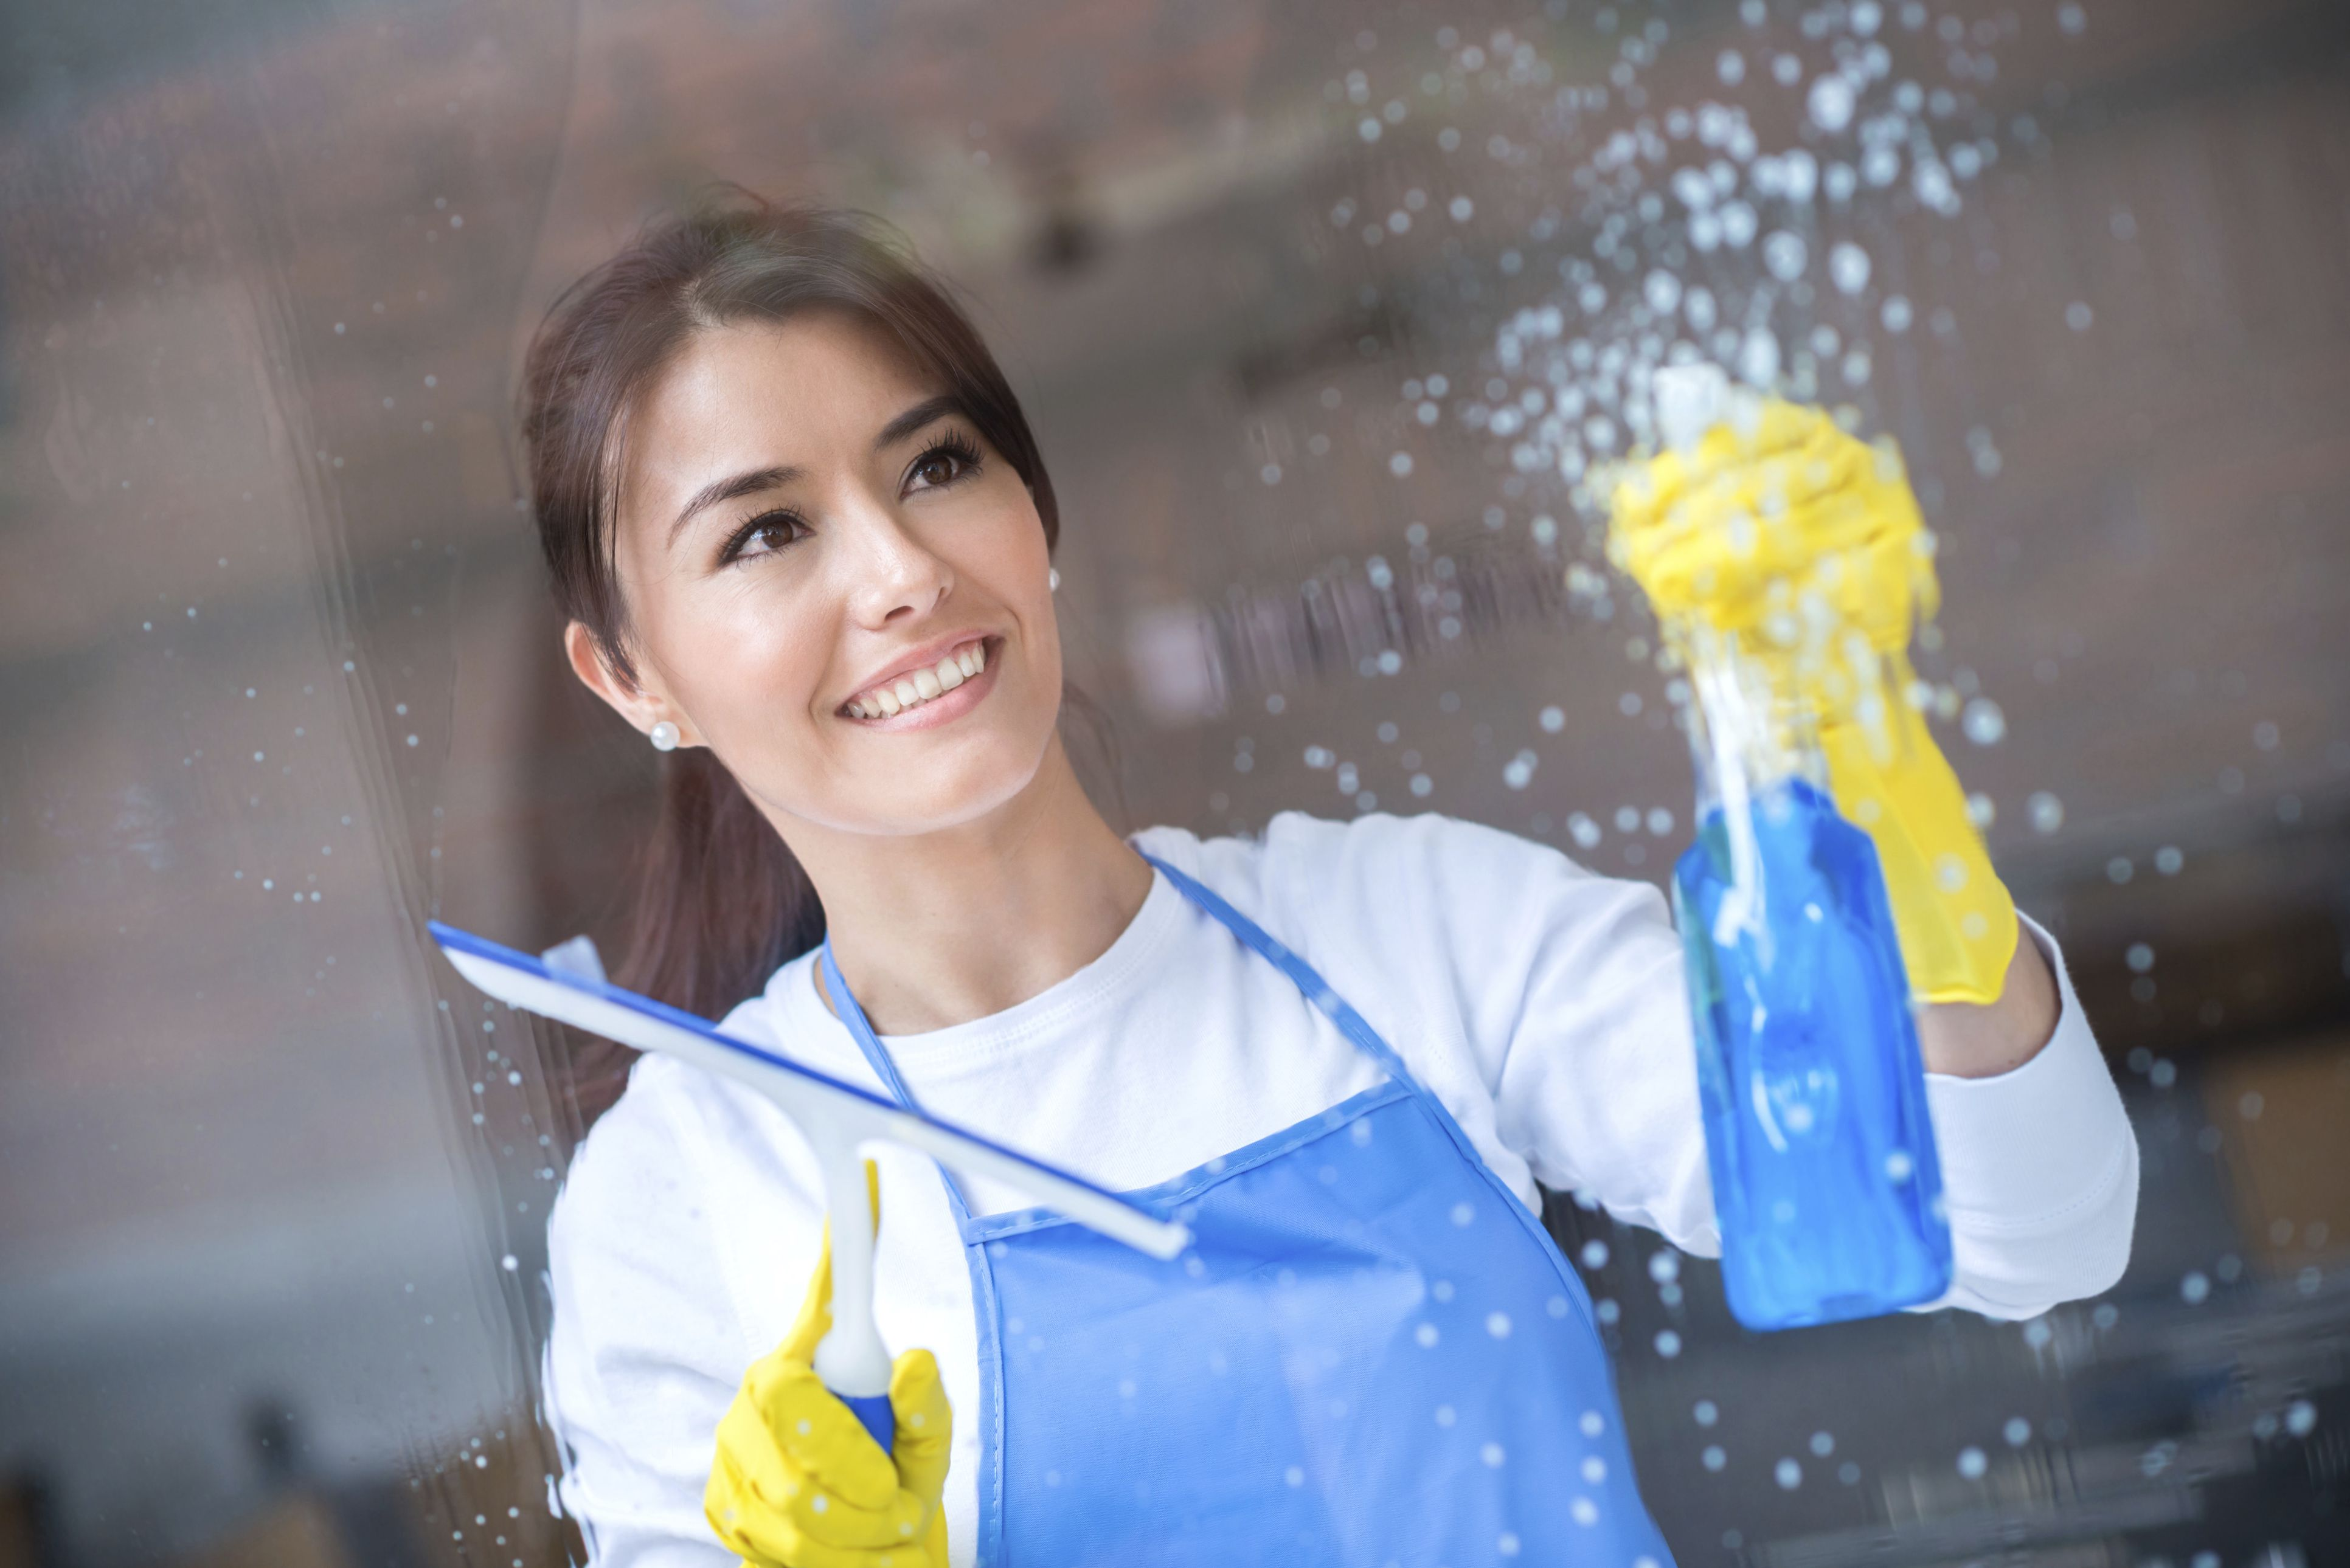 5 Reasons To Start A Home Based Commercial Cleaning Business